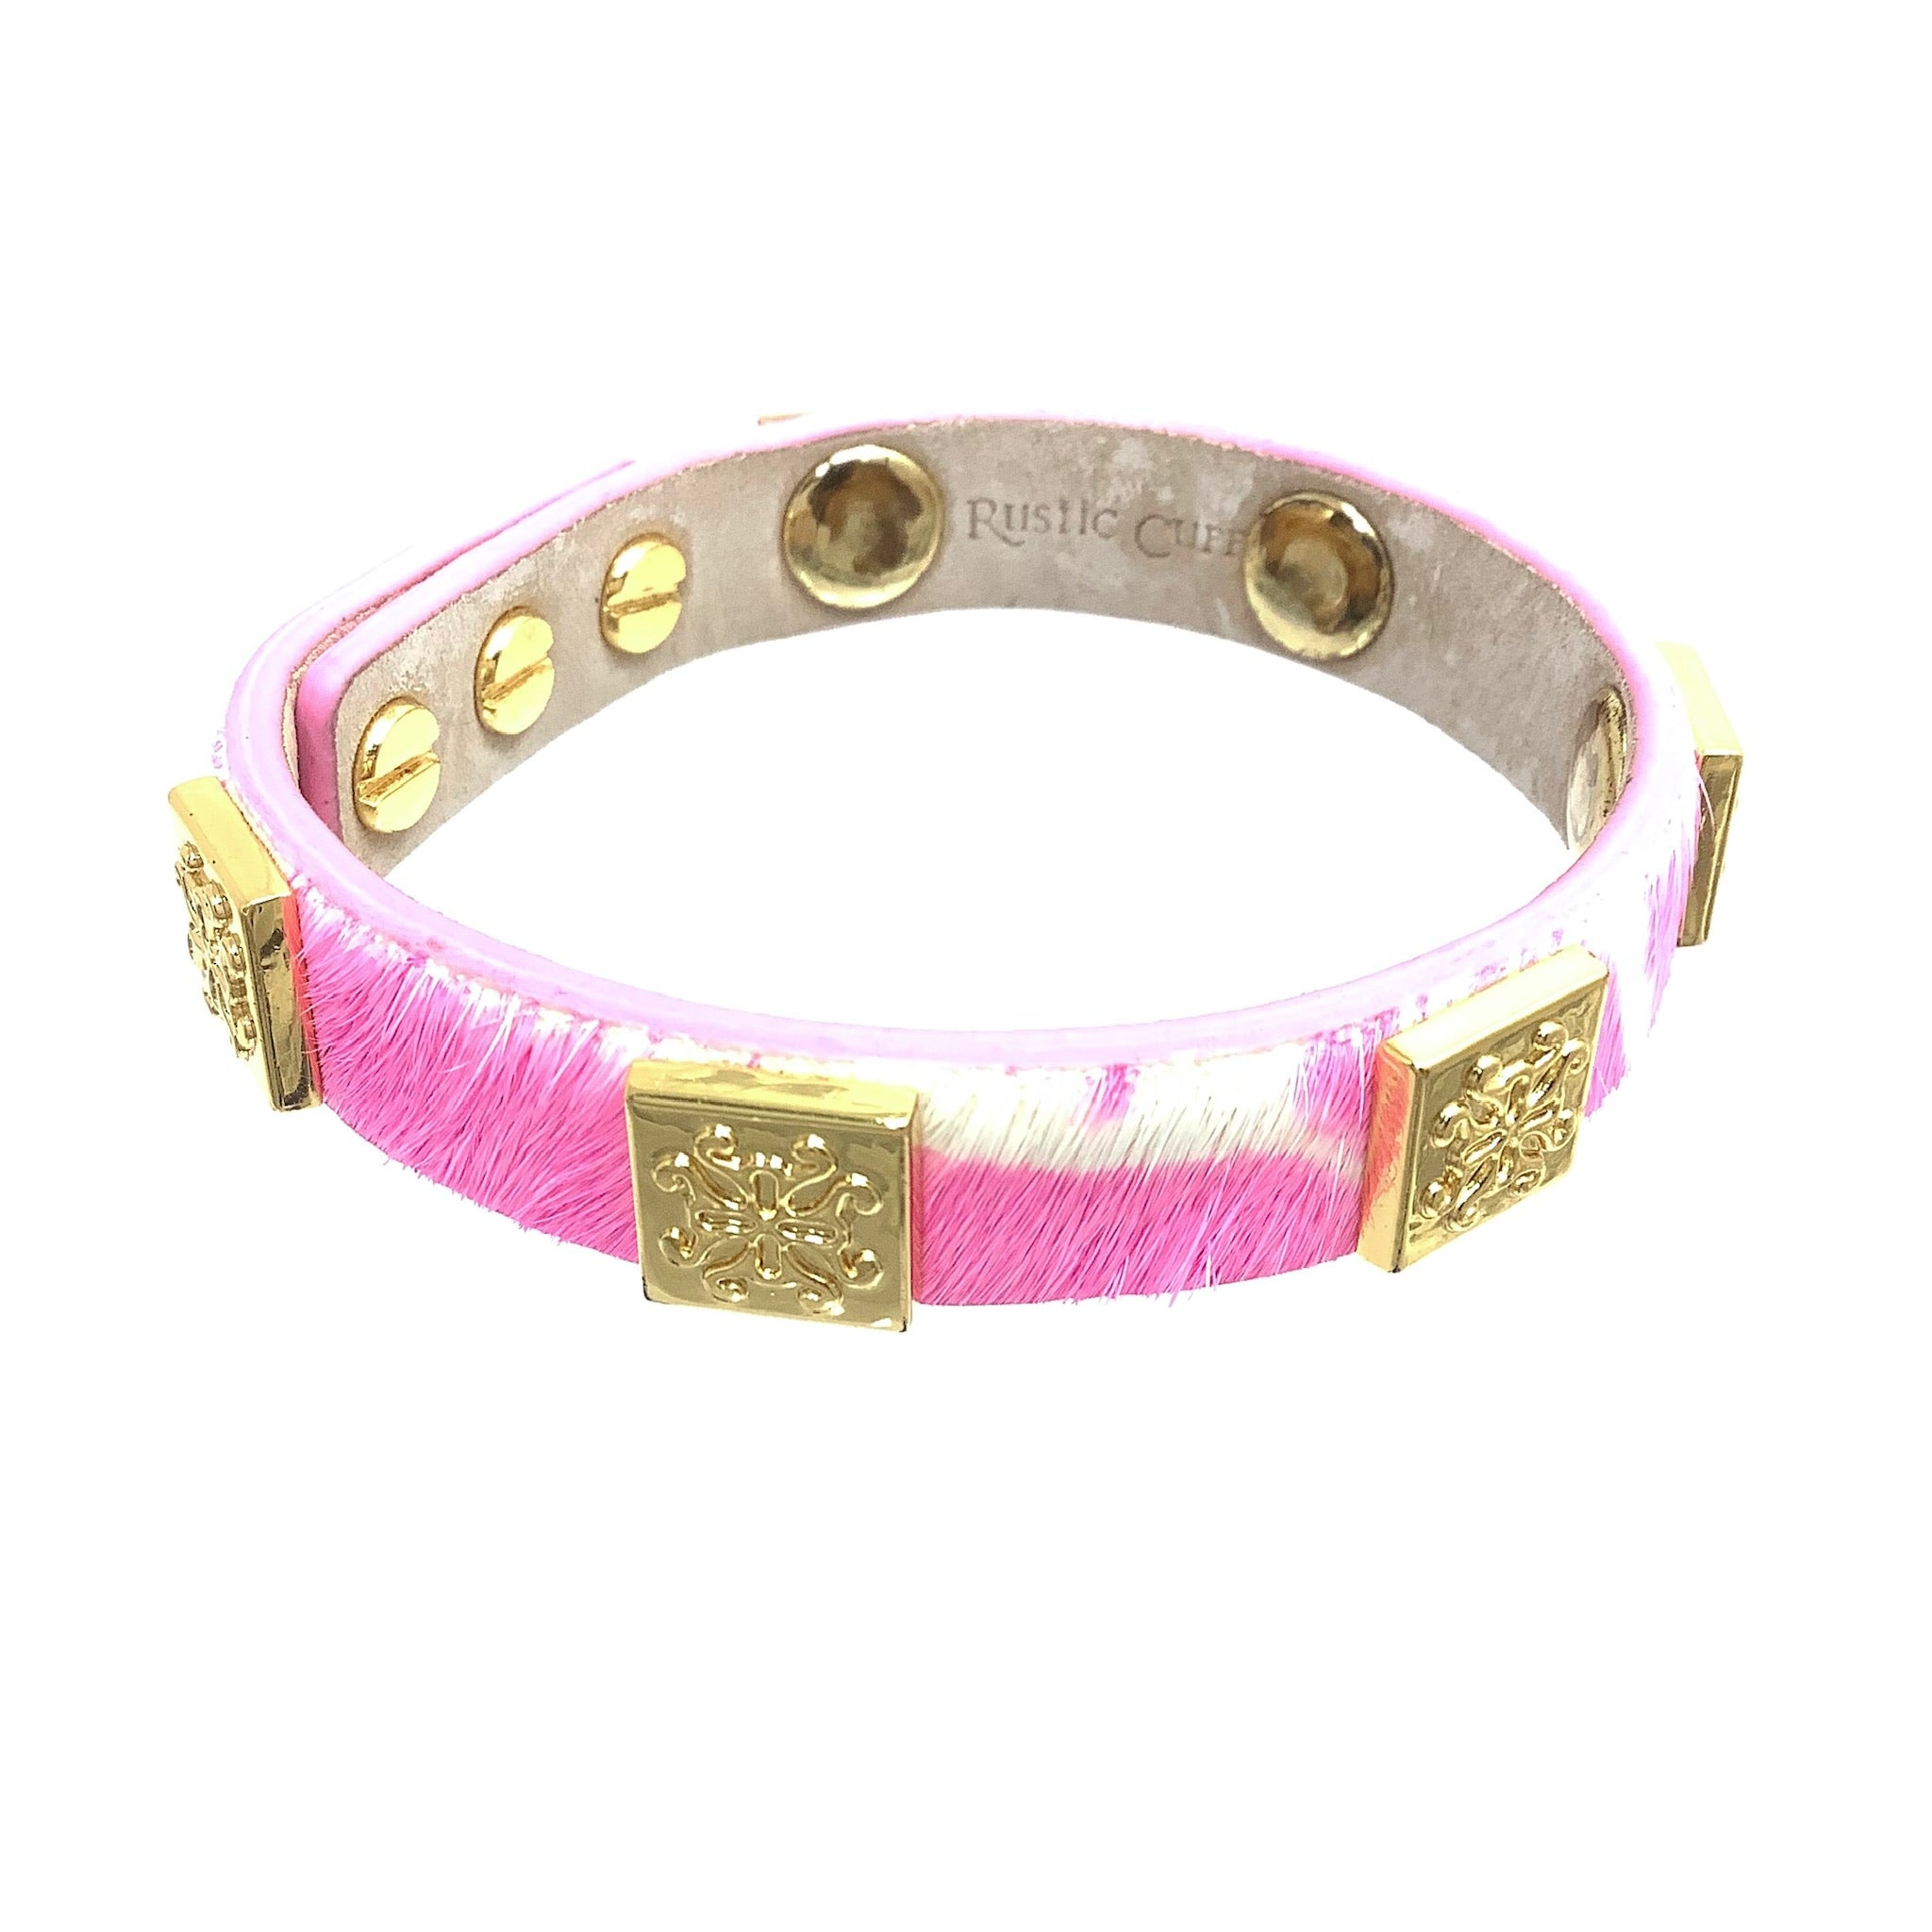 Primary Photo - BRAND: RUSTIC CUFF <BR>STYLE: BRACELET <BR>COLOR: PINK <BR>OTHER INFO: 6 MEAGAN SKINNY <BR>SKU: 258-25898-10972